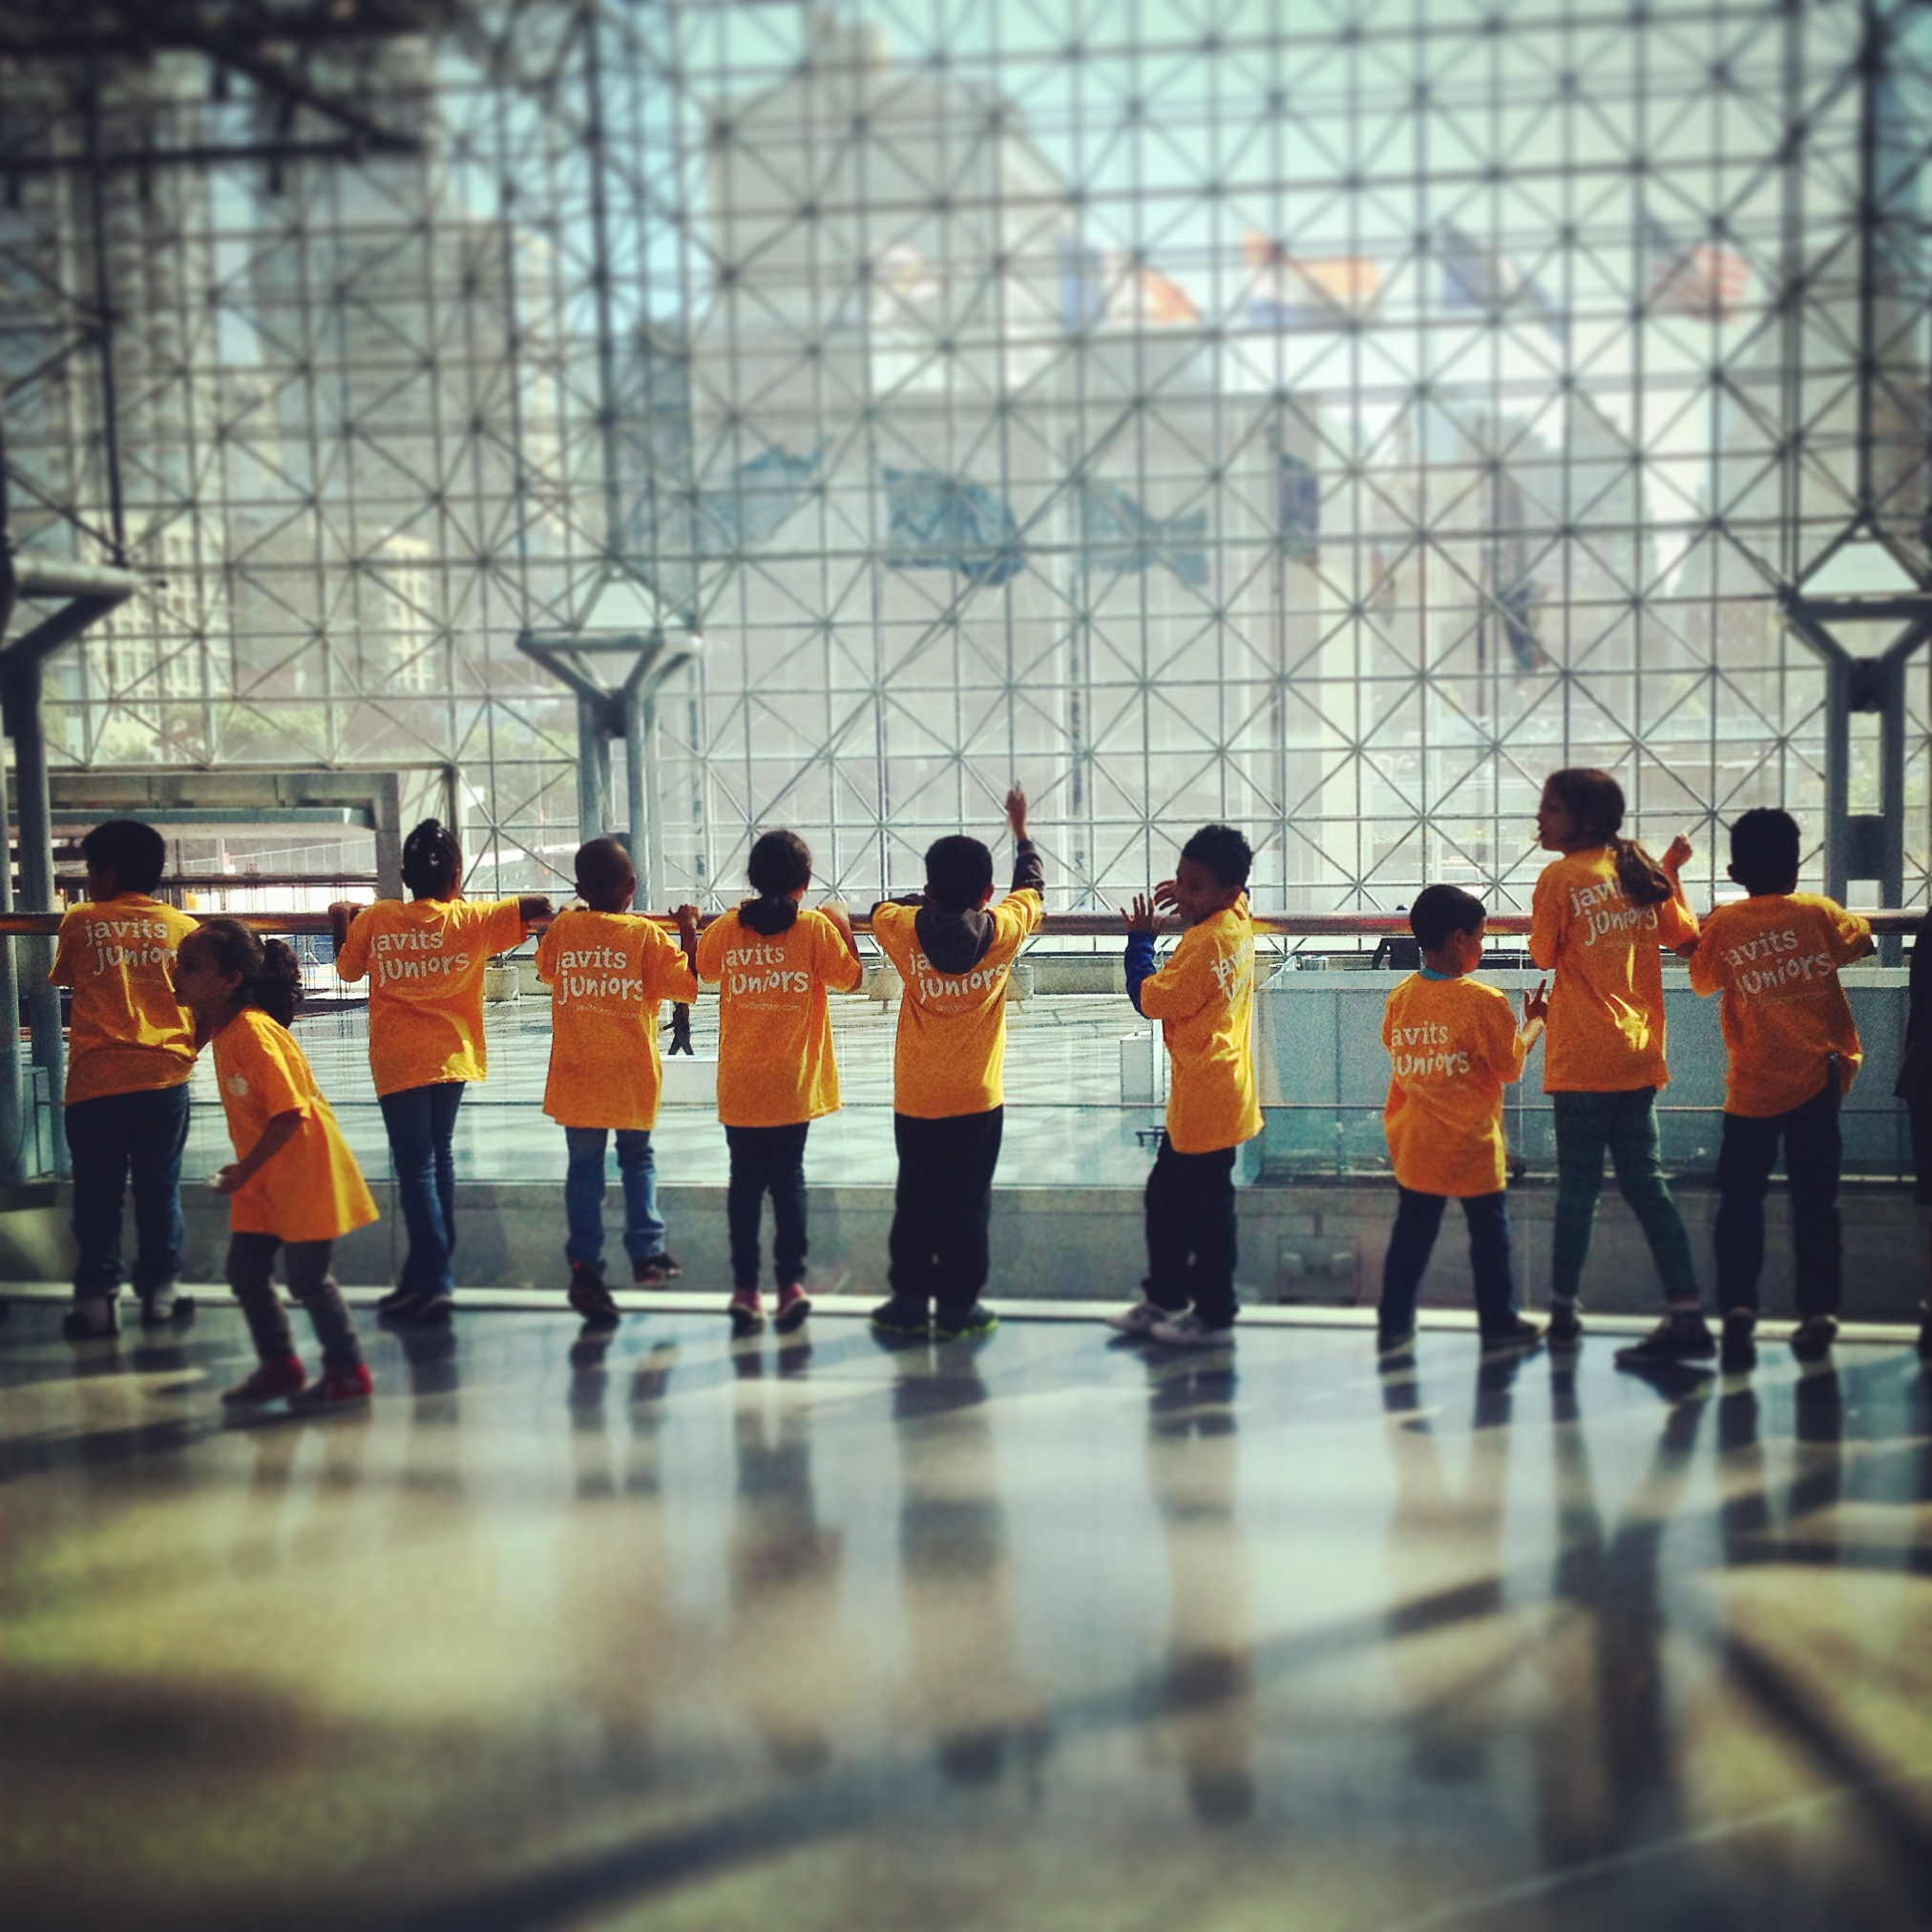 After School kids at the Javits Center